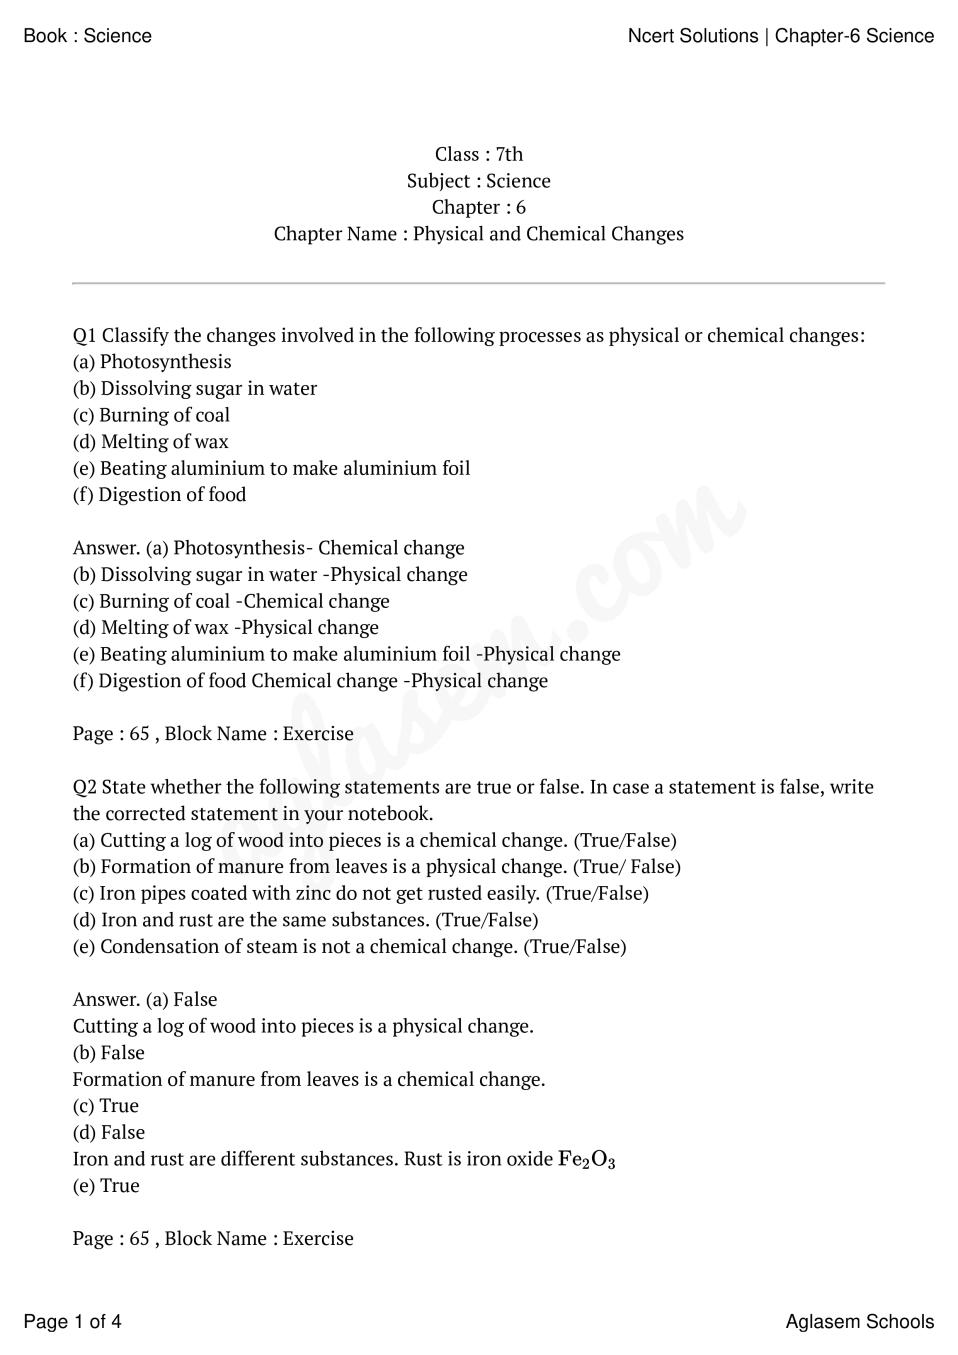 medium resolution of NCERT Solutions for Class 7 Science Chapter 6 – Physical and Chemical  Changes   AglaSem Schools